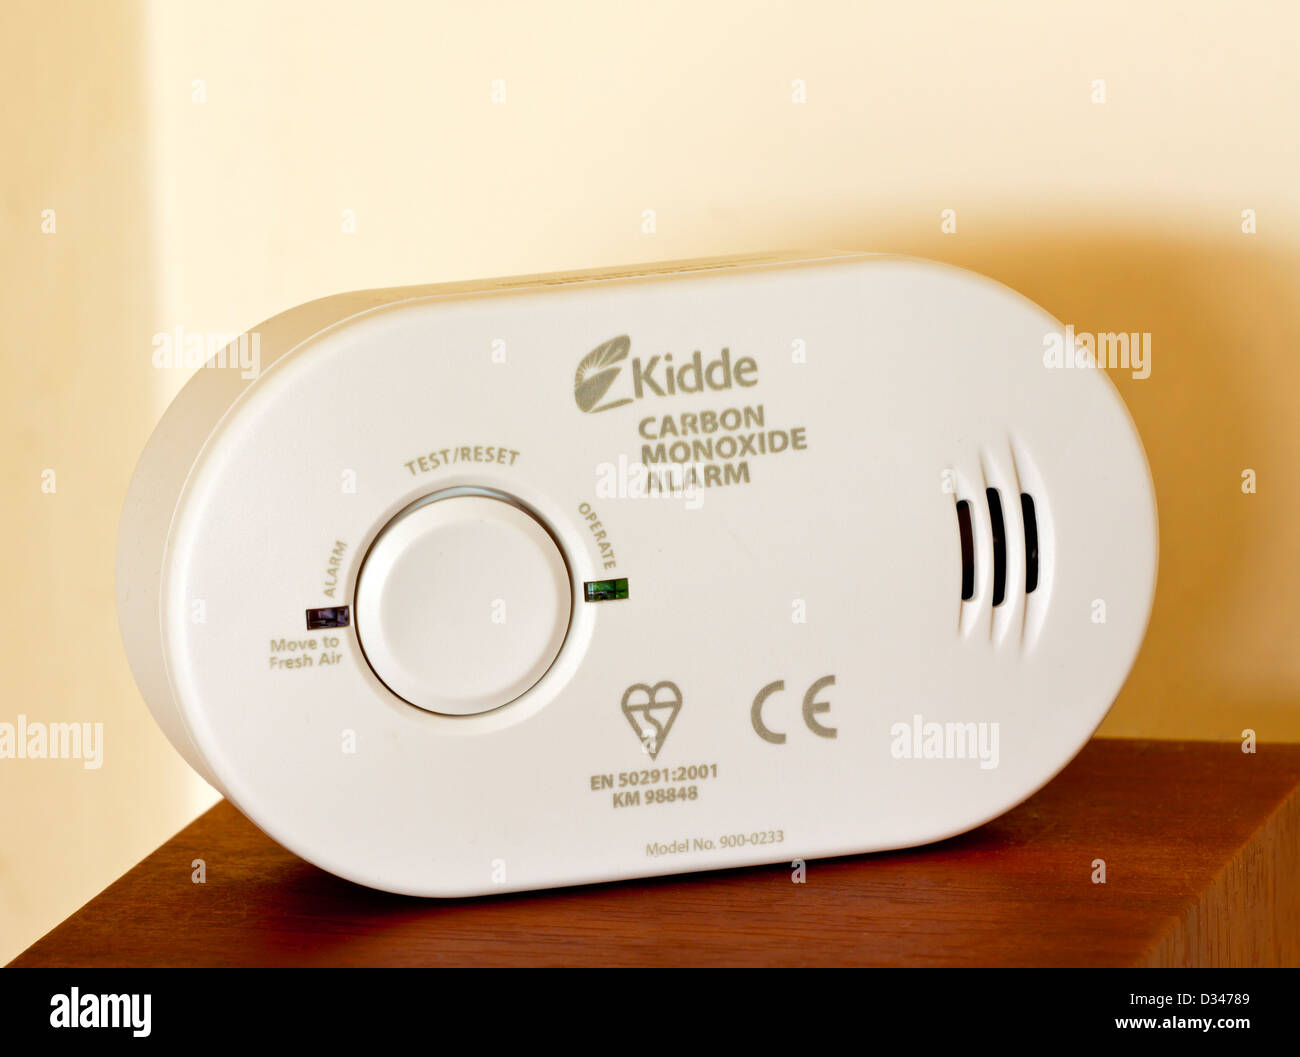 Domestic carbon monoxide alarm used in homes to detect the dangerous gas before causing poisoning or death - Stock Image